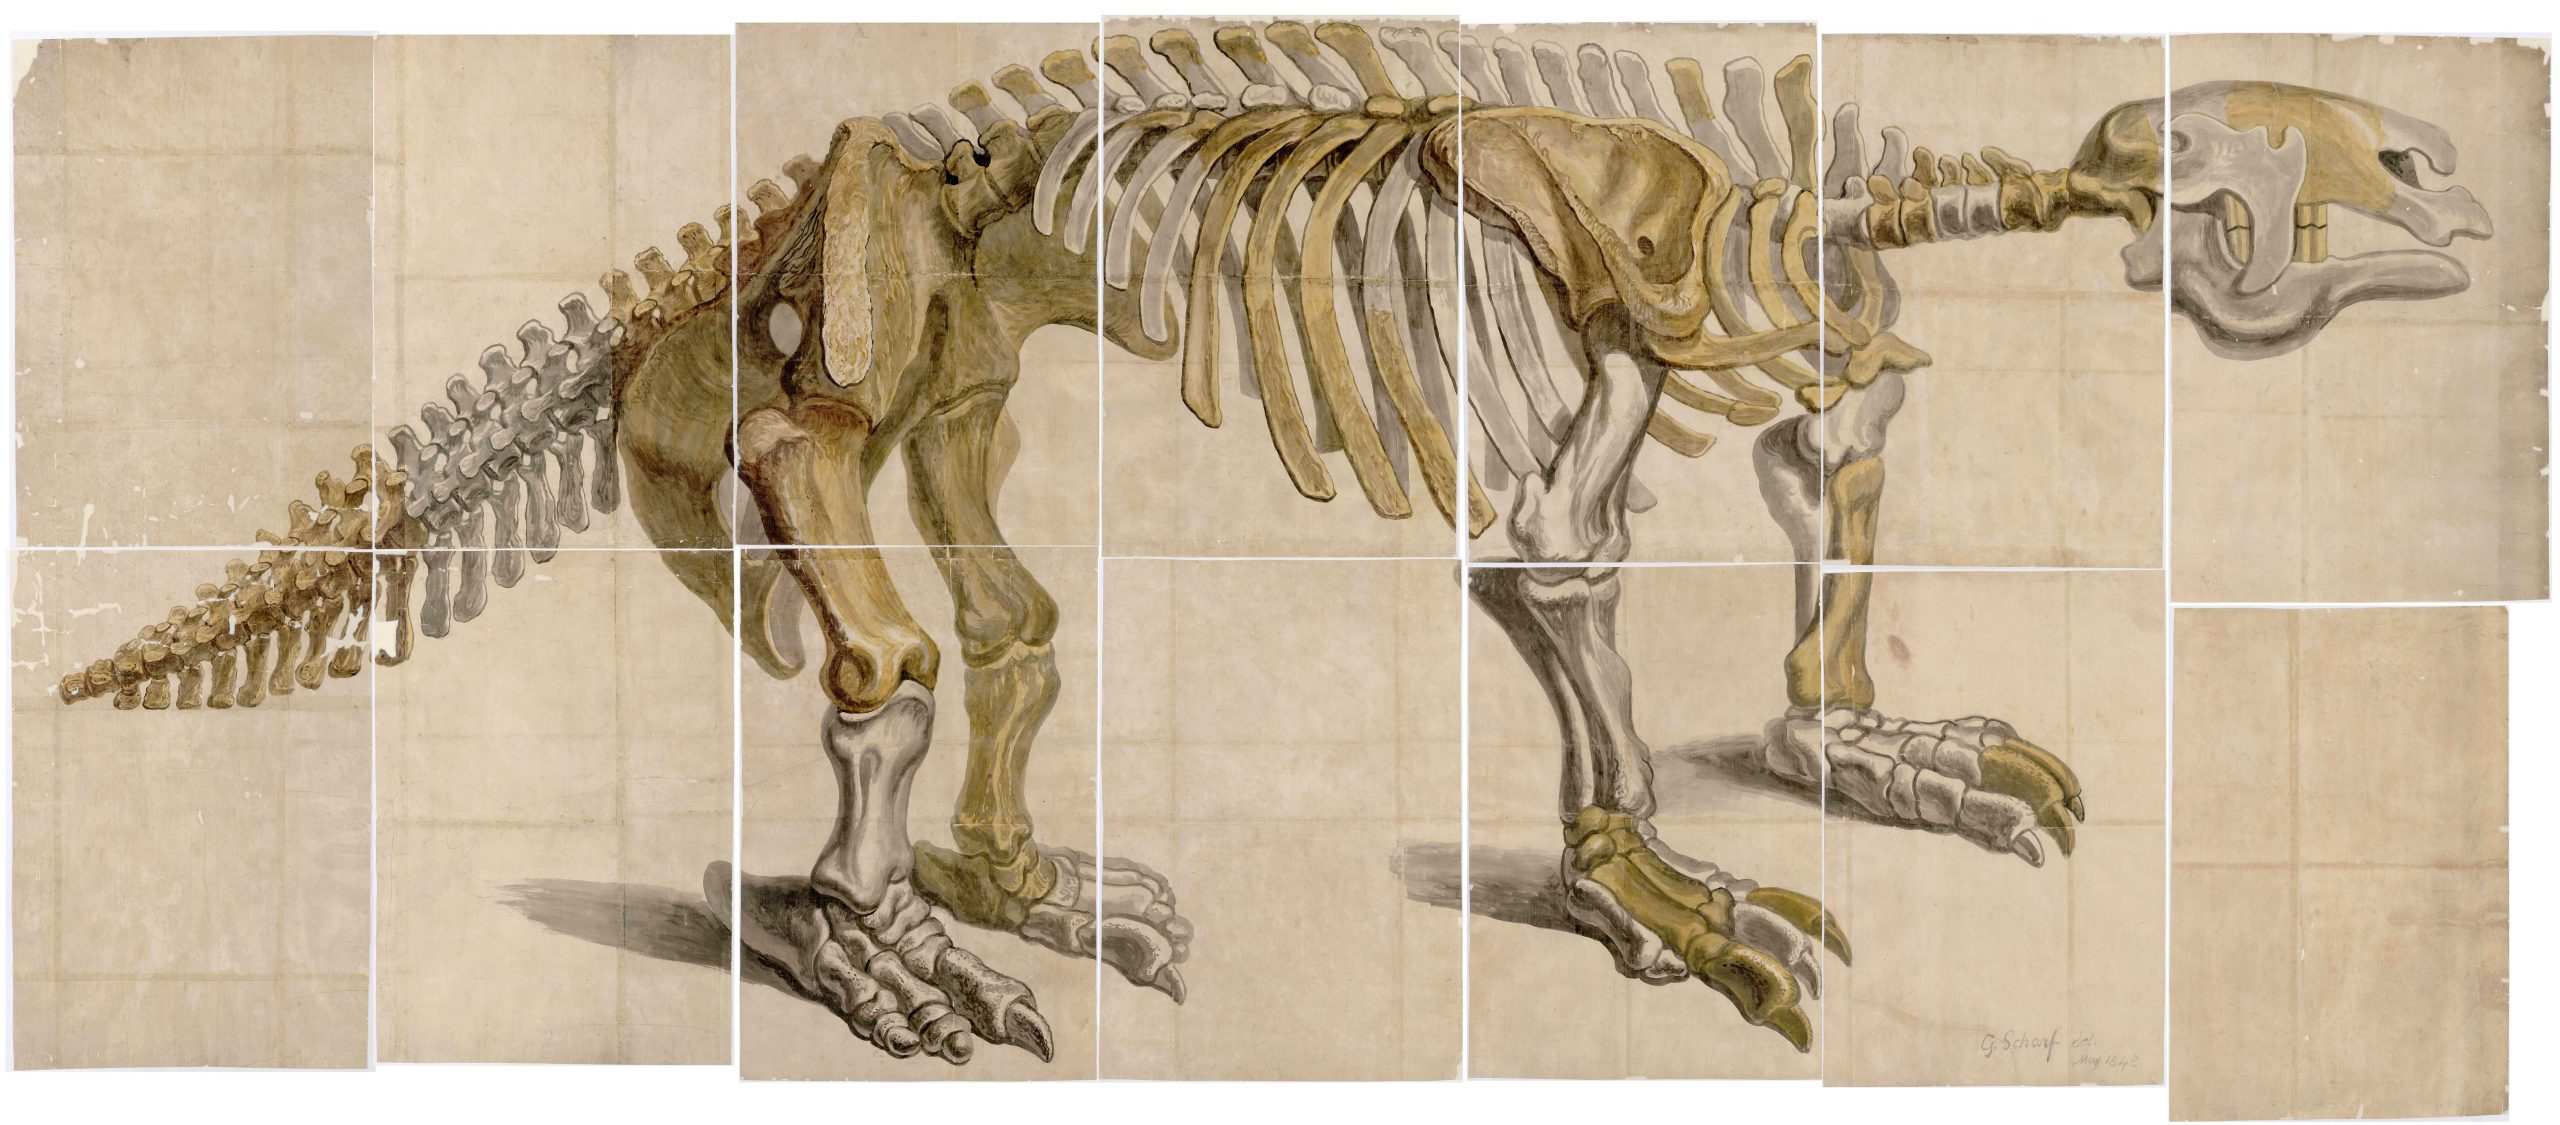 George Johann Scharf (1786-1860) Watercolour drawing of a Megatherium. N.p., 1842.